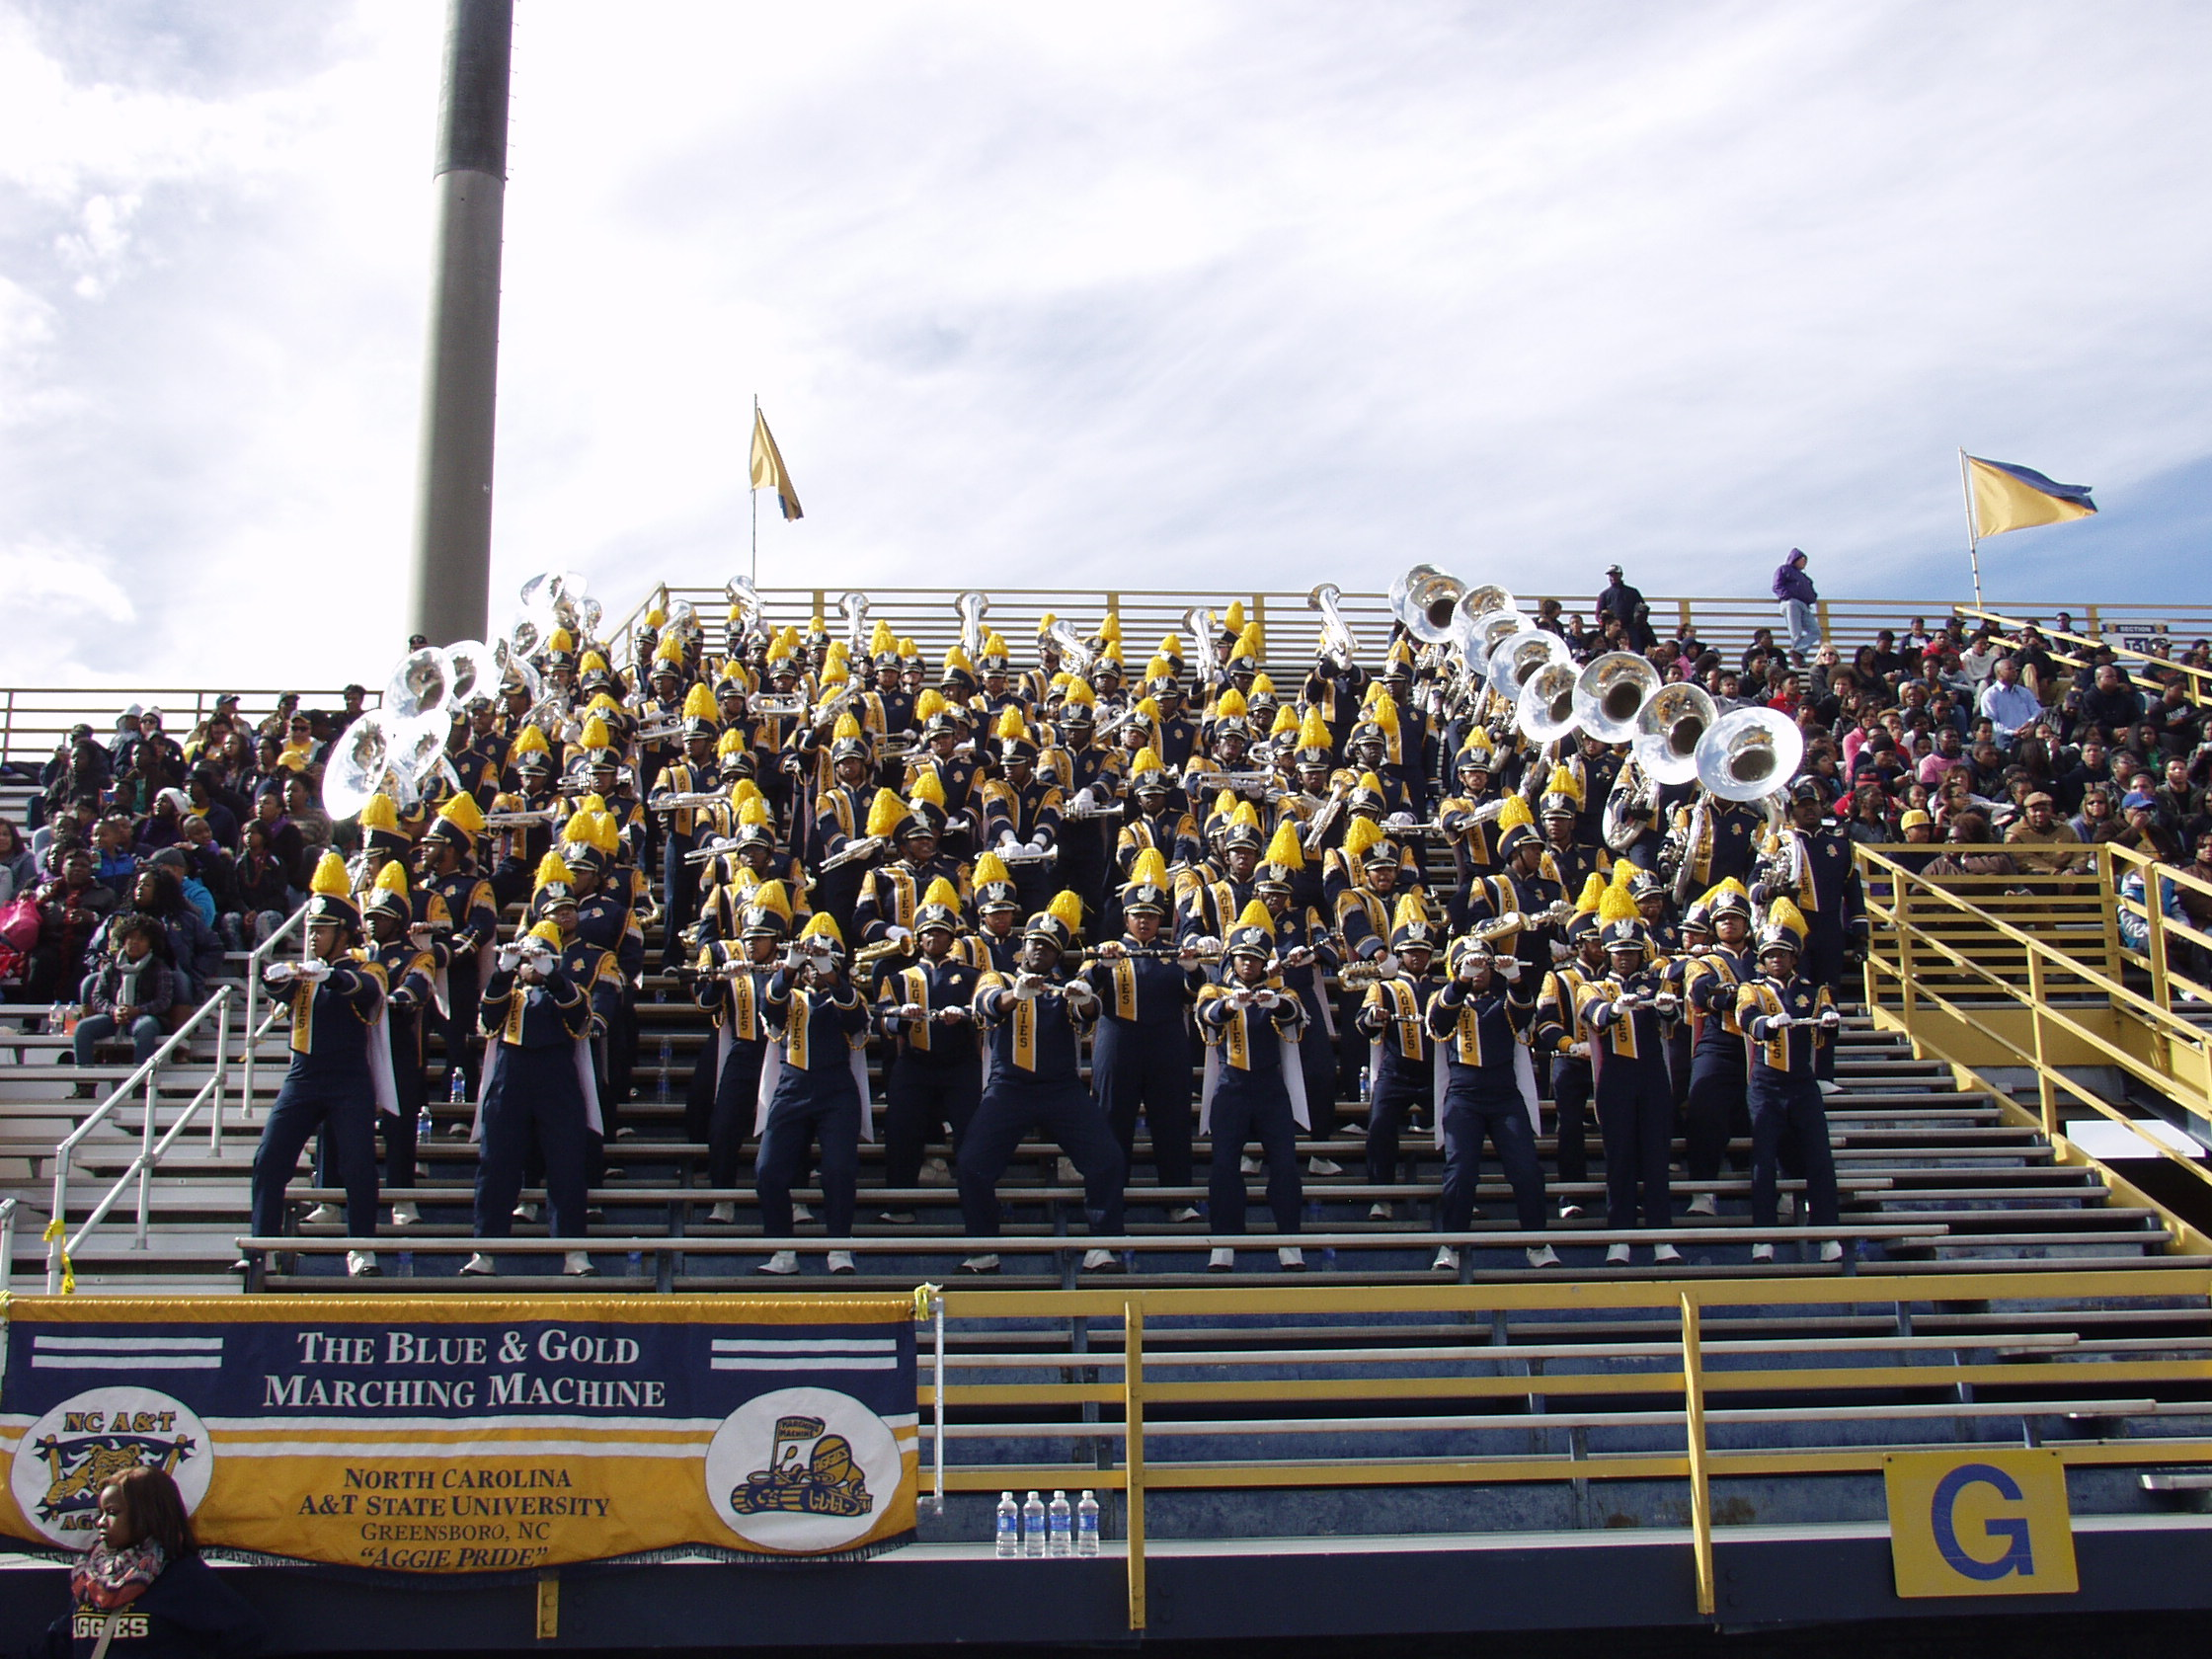 NC A&T U. Marching Band in their Stands